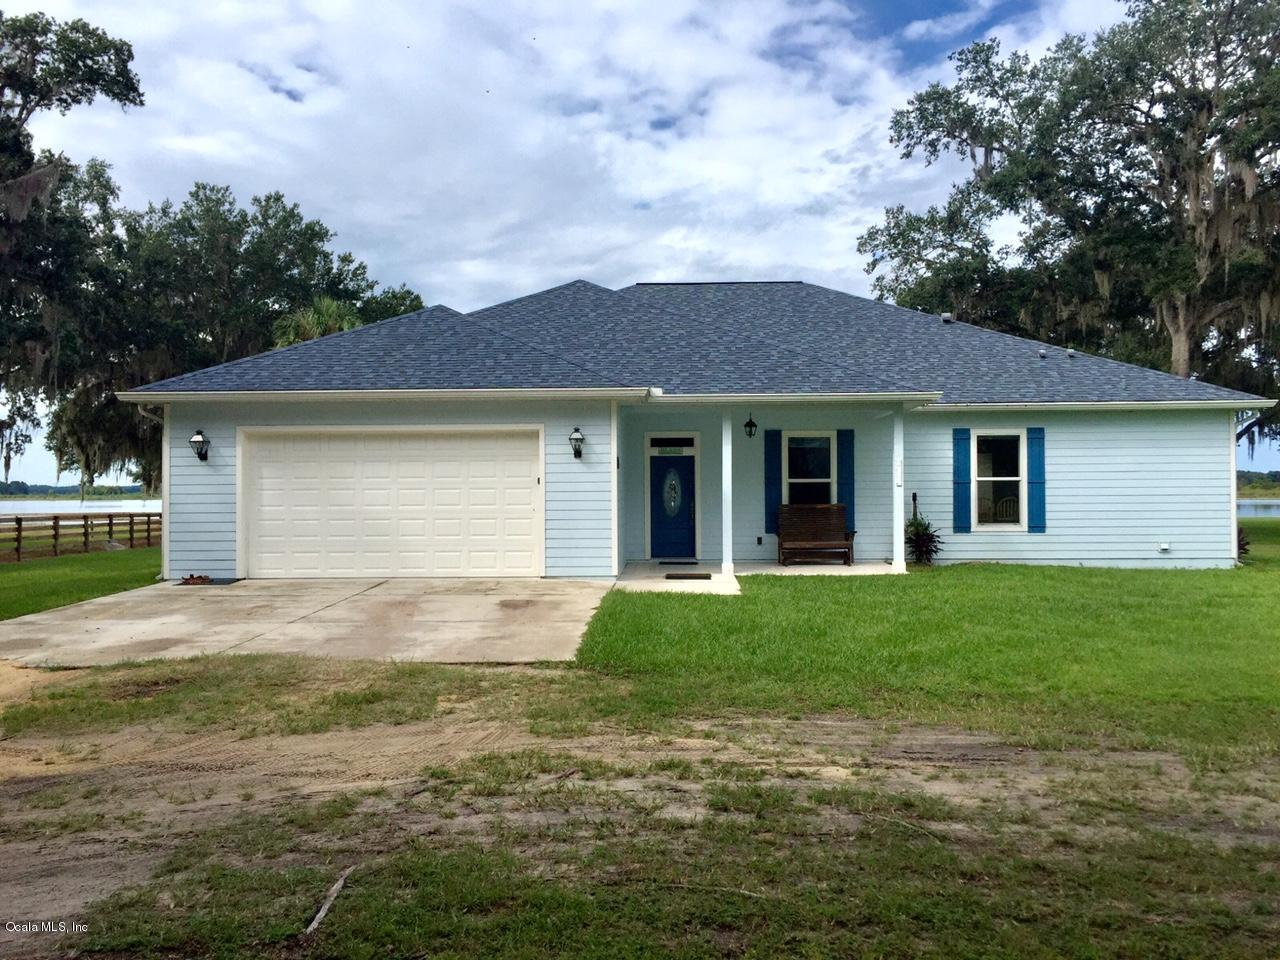 14480 NE 250 AVENUE, SALT SPRINGS, FL 32134